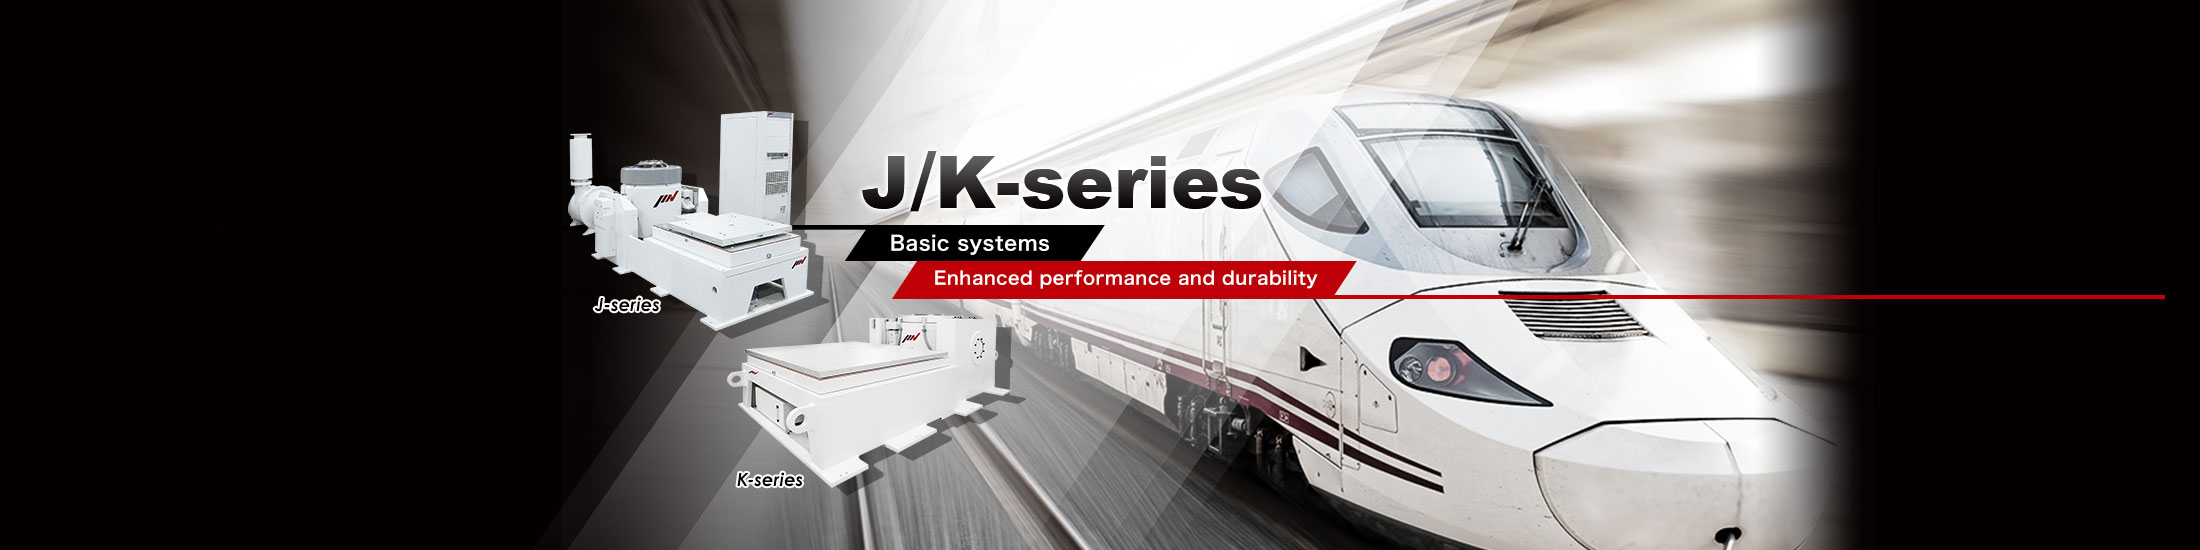 J/K-series Basic systems Enhanced performance and durability